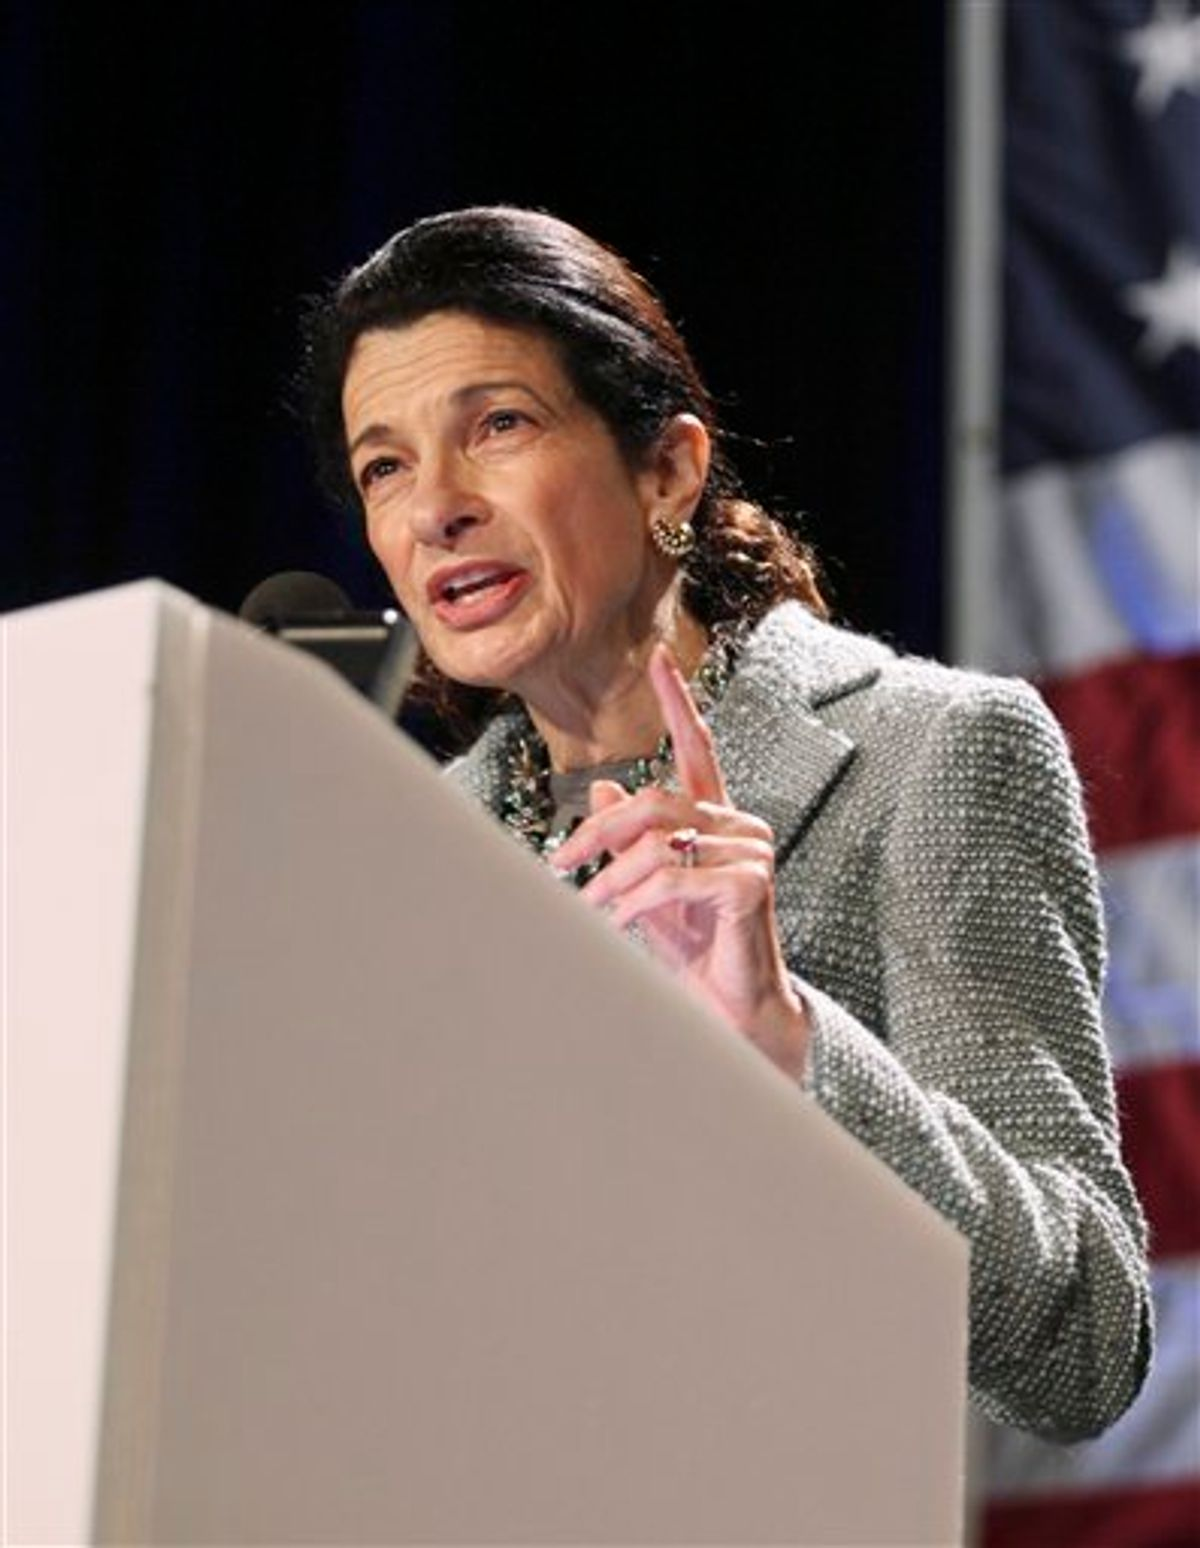 FILE- In this May 7, 2010 file photo, Sen. Olympia Snowe, R-Maine, speaks in Portland, Maine.  The government is expected to announce this week that more than 58 million Social Security recipients will go through another year without an increase in their monthly benefits. Snowe was the only Republican to support a second Social Security bonus payment, like the one-time $250 in 2009, when it became clear that seniors wouldn't get an increase in monthly benefit payments in 2010; the bill died from lack of support.   (AP Photo/Joel Page, File) (AP)